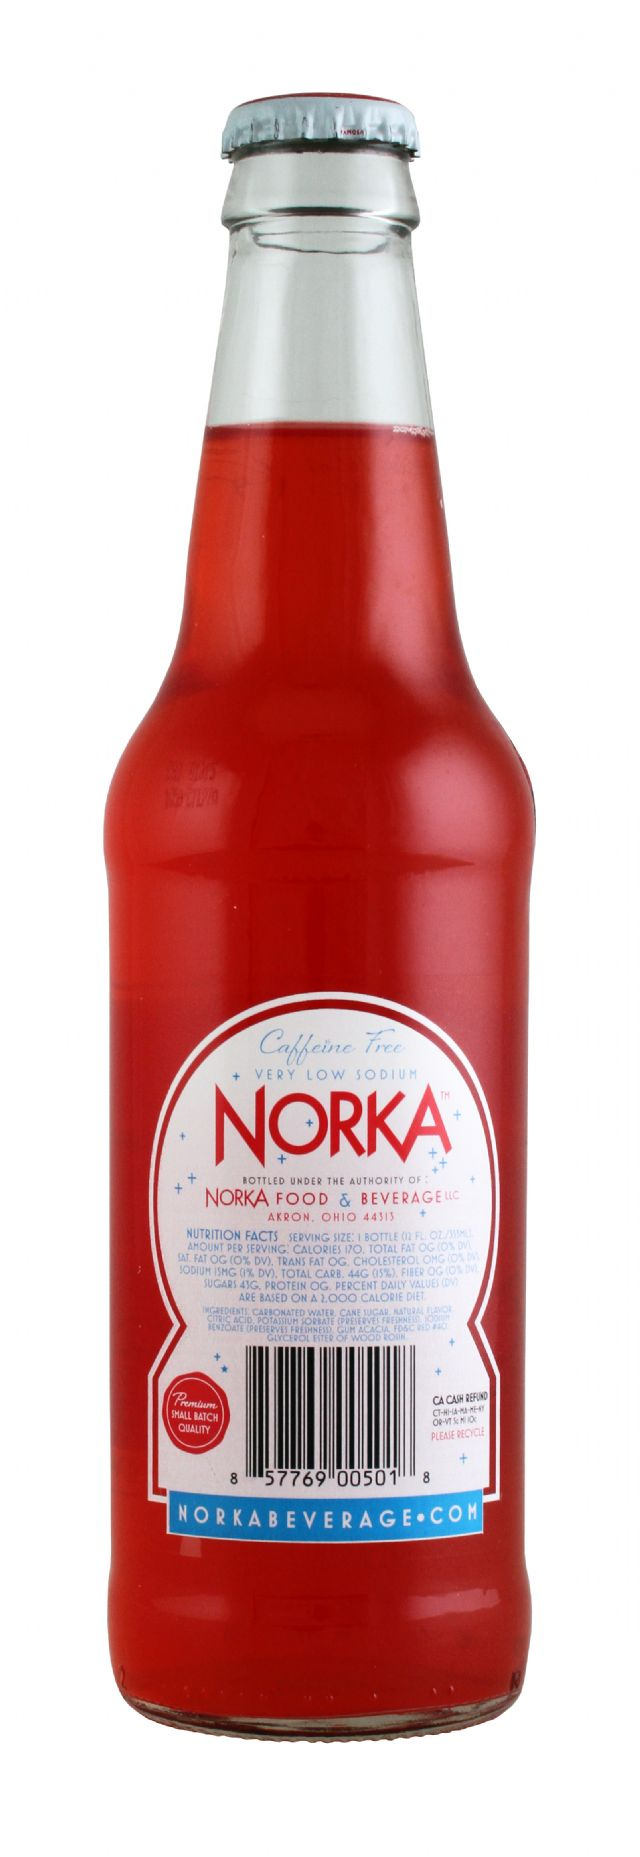 Norka Sparkling Beverages: Norka CherryStraw Facts